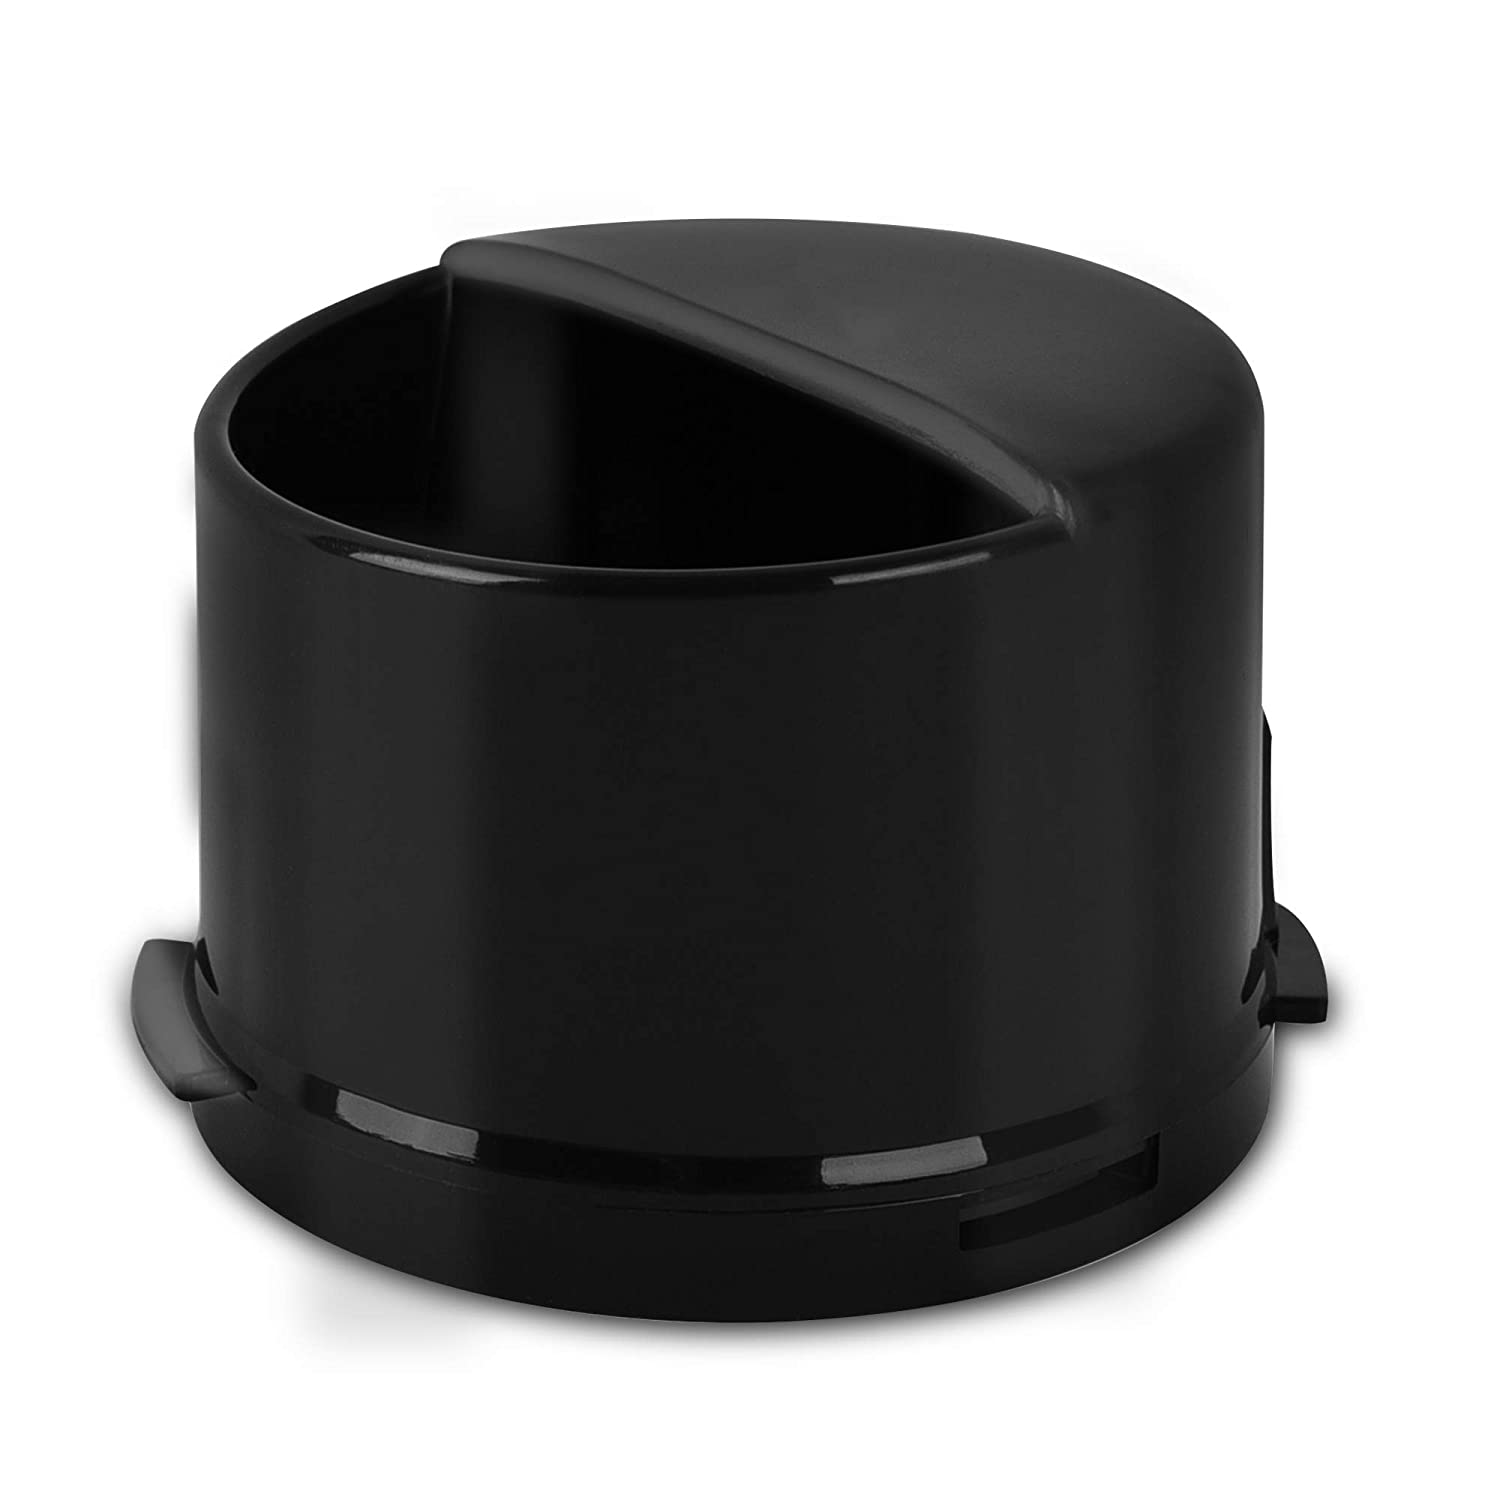 Coipur Whirlpool Water Filter Cap for Refrigerators Fits Most Whirlpool and Kenmore Side by Side Refrigerators 4396841,469020,W10121145 (Black) 1 PC (black, 1)